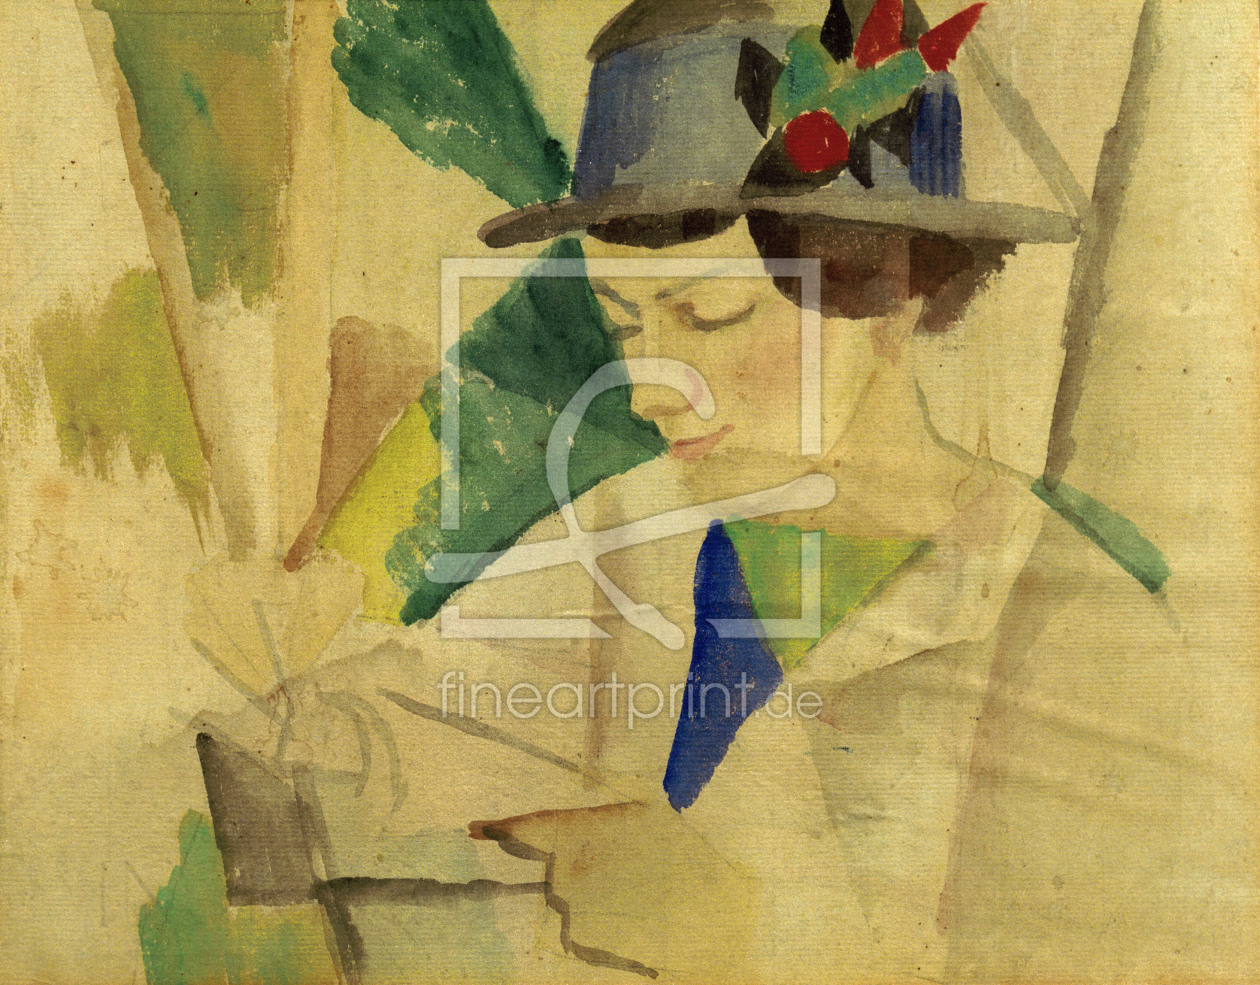 Bild-Nr.: 30006510 August Macke / Portrait of the wife erstellt von Macke, August